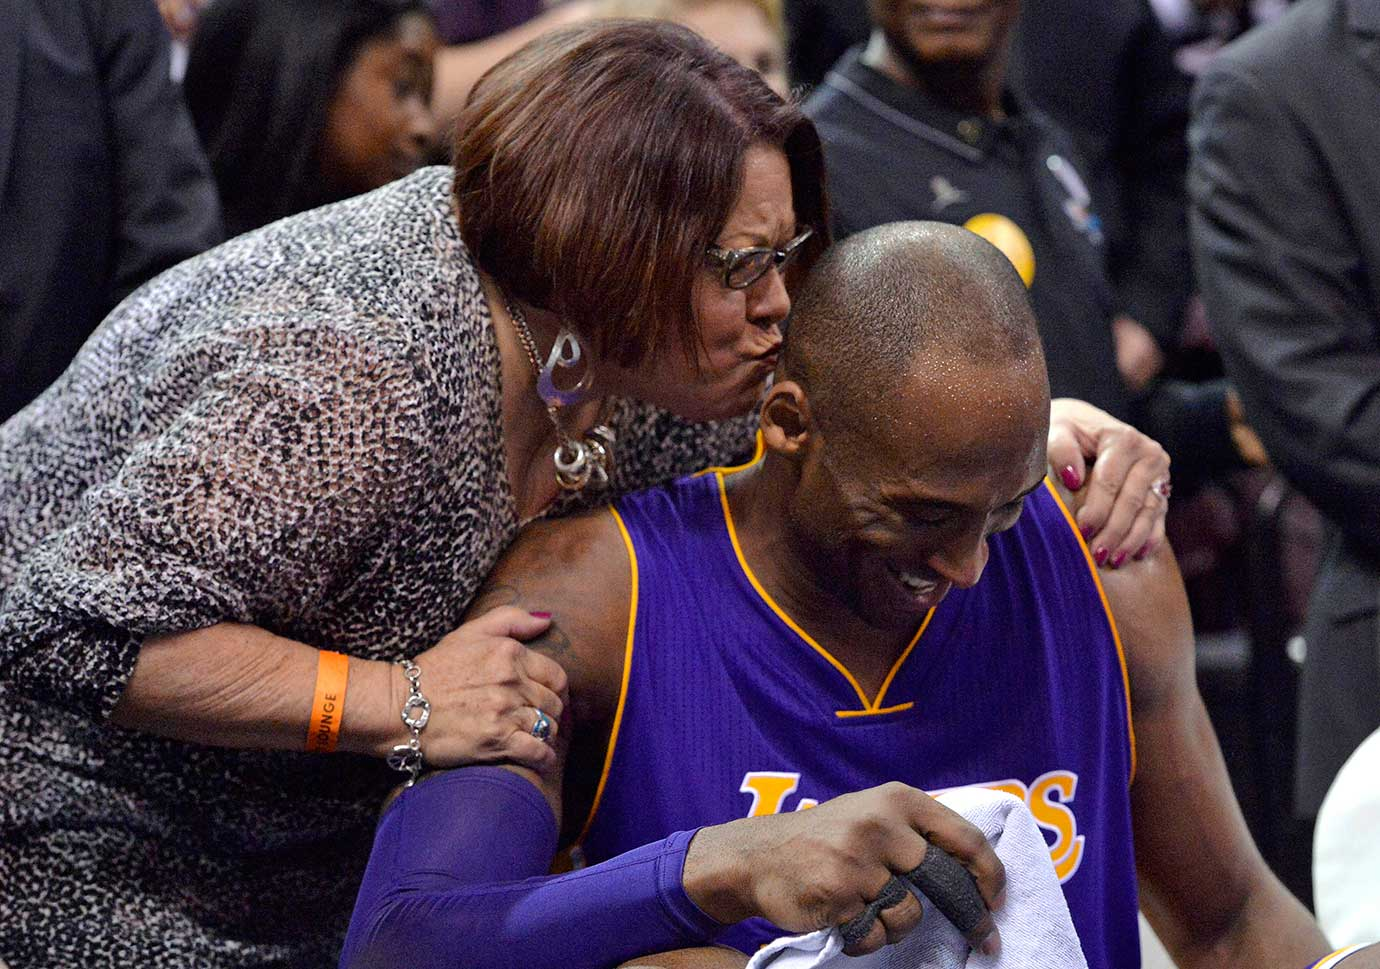 Charla Lofton leaves her seat to kiss Kobe Bryant during the final seconds of his last game in Memphis.